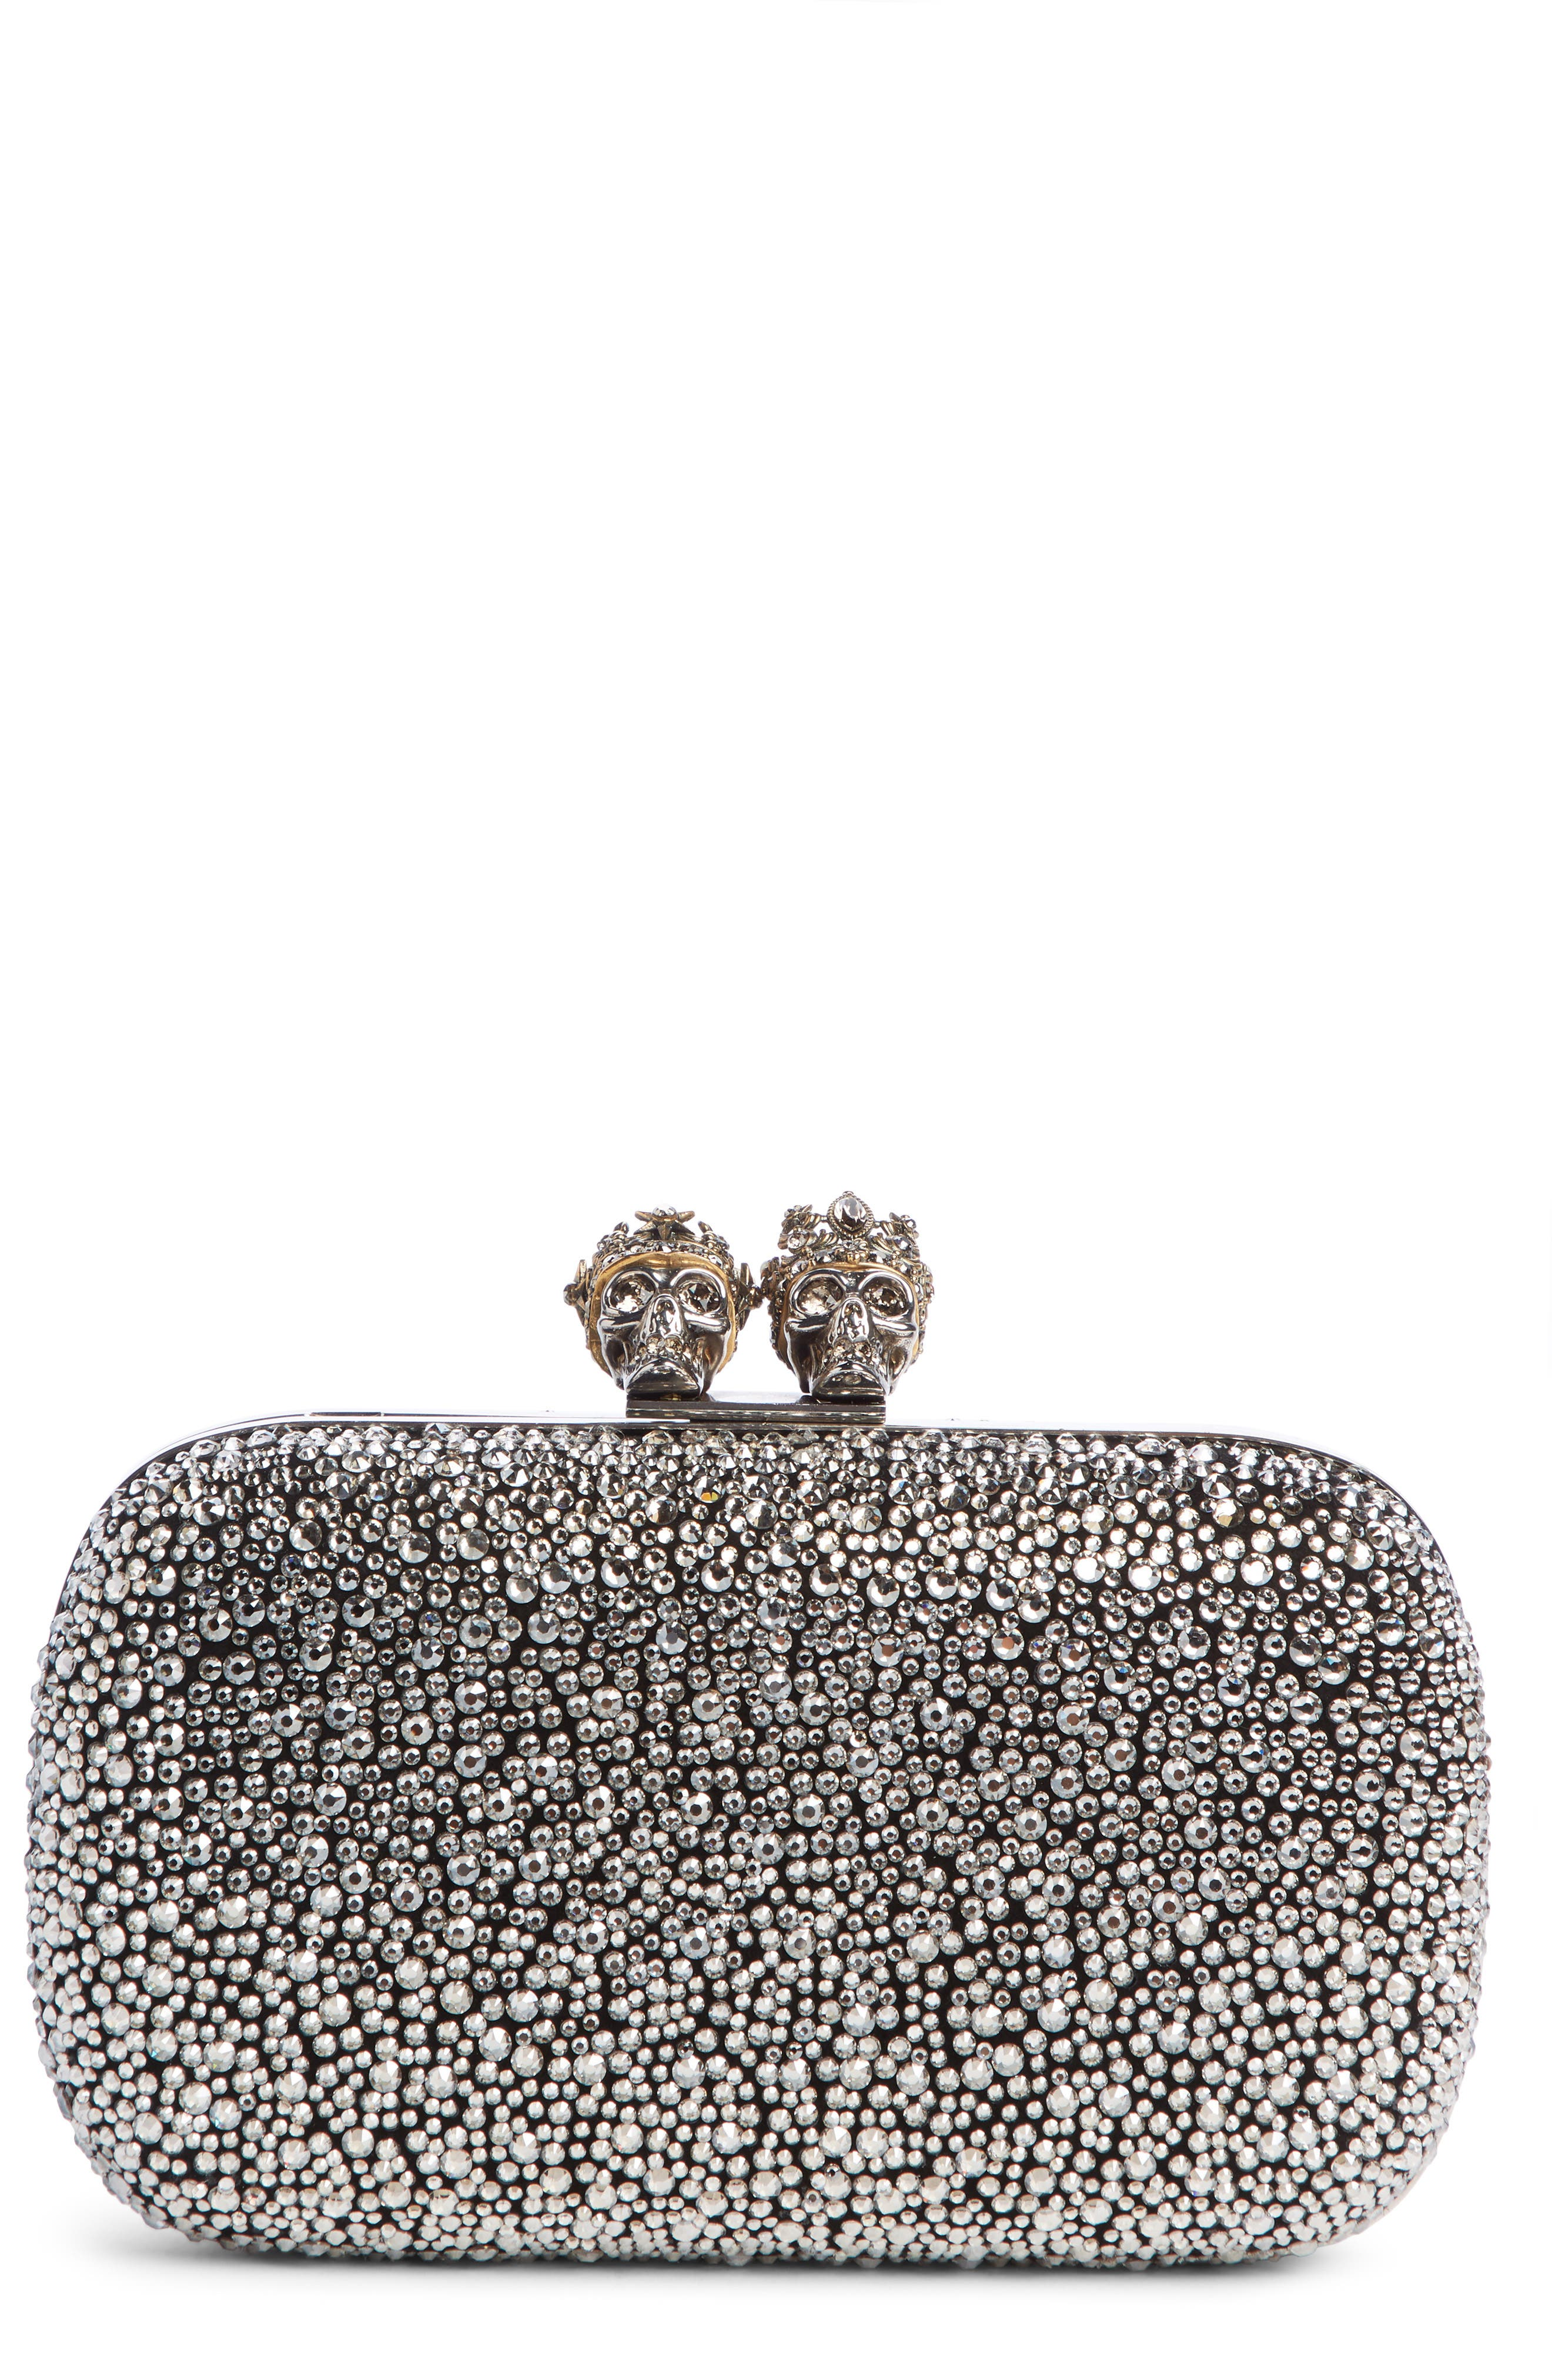 Crystal Embellished Queen & King Clutch,                             Main thumbnail 1, color,                             BLACK